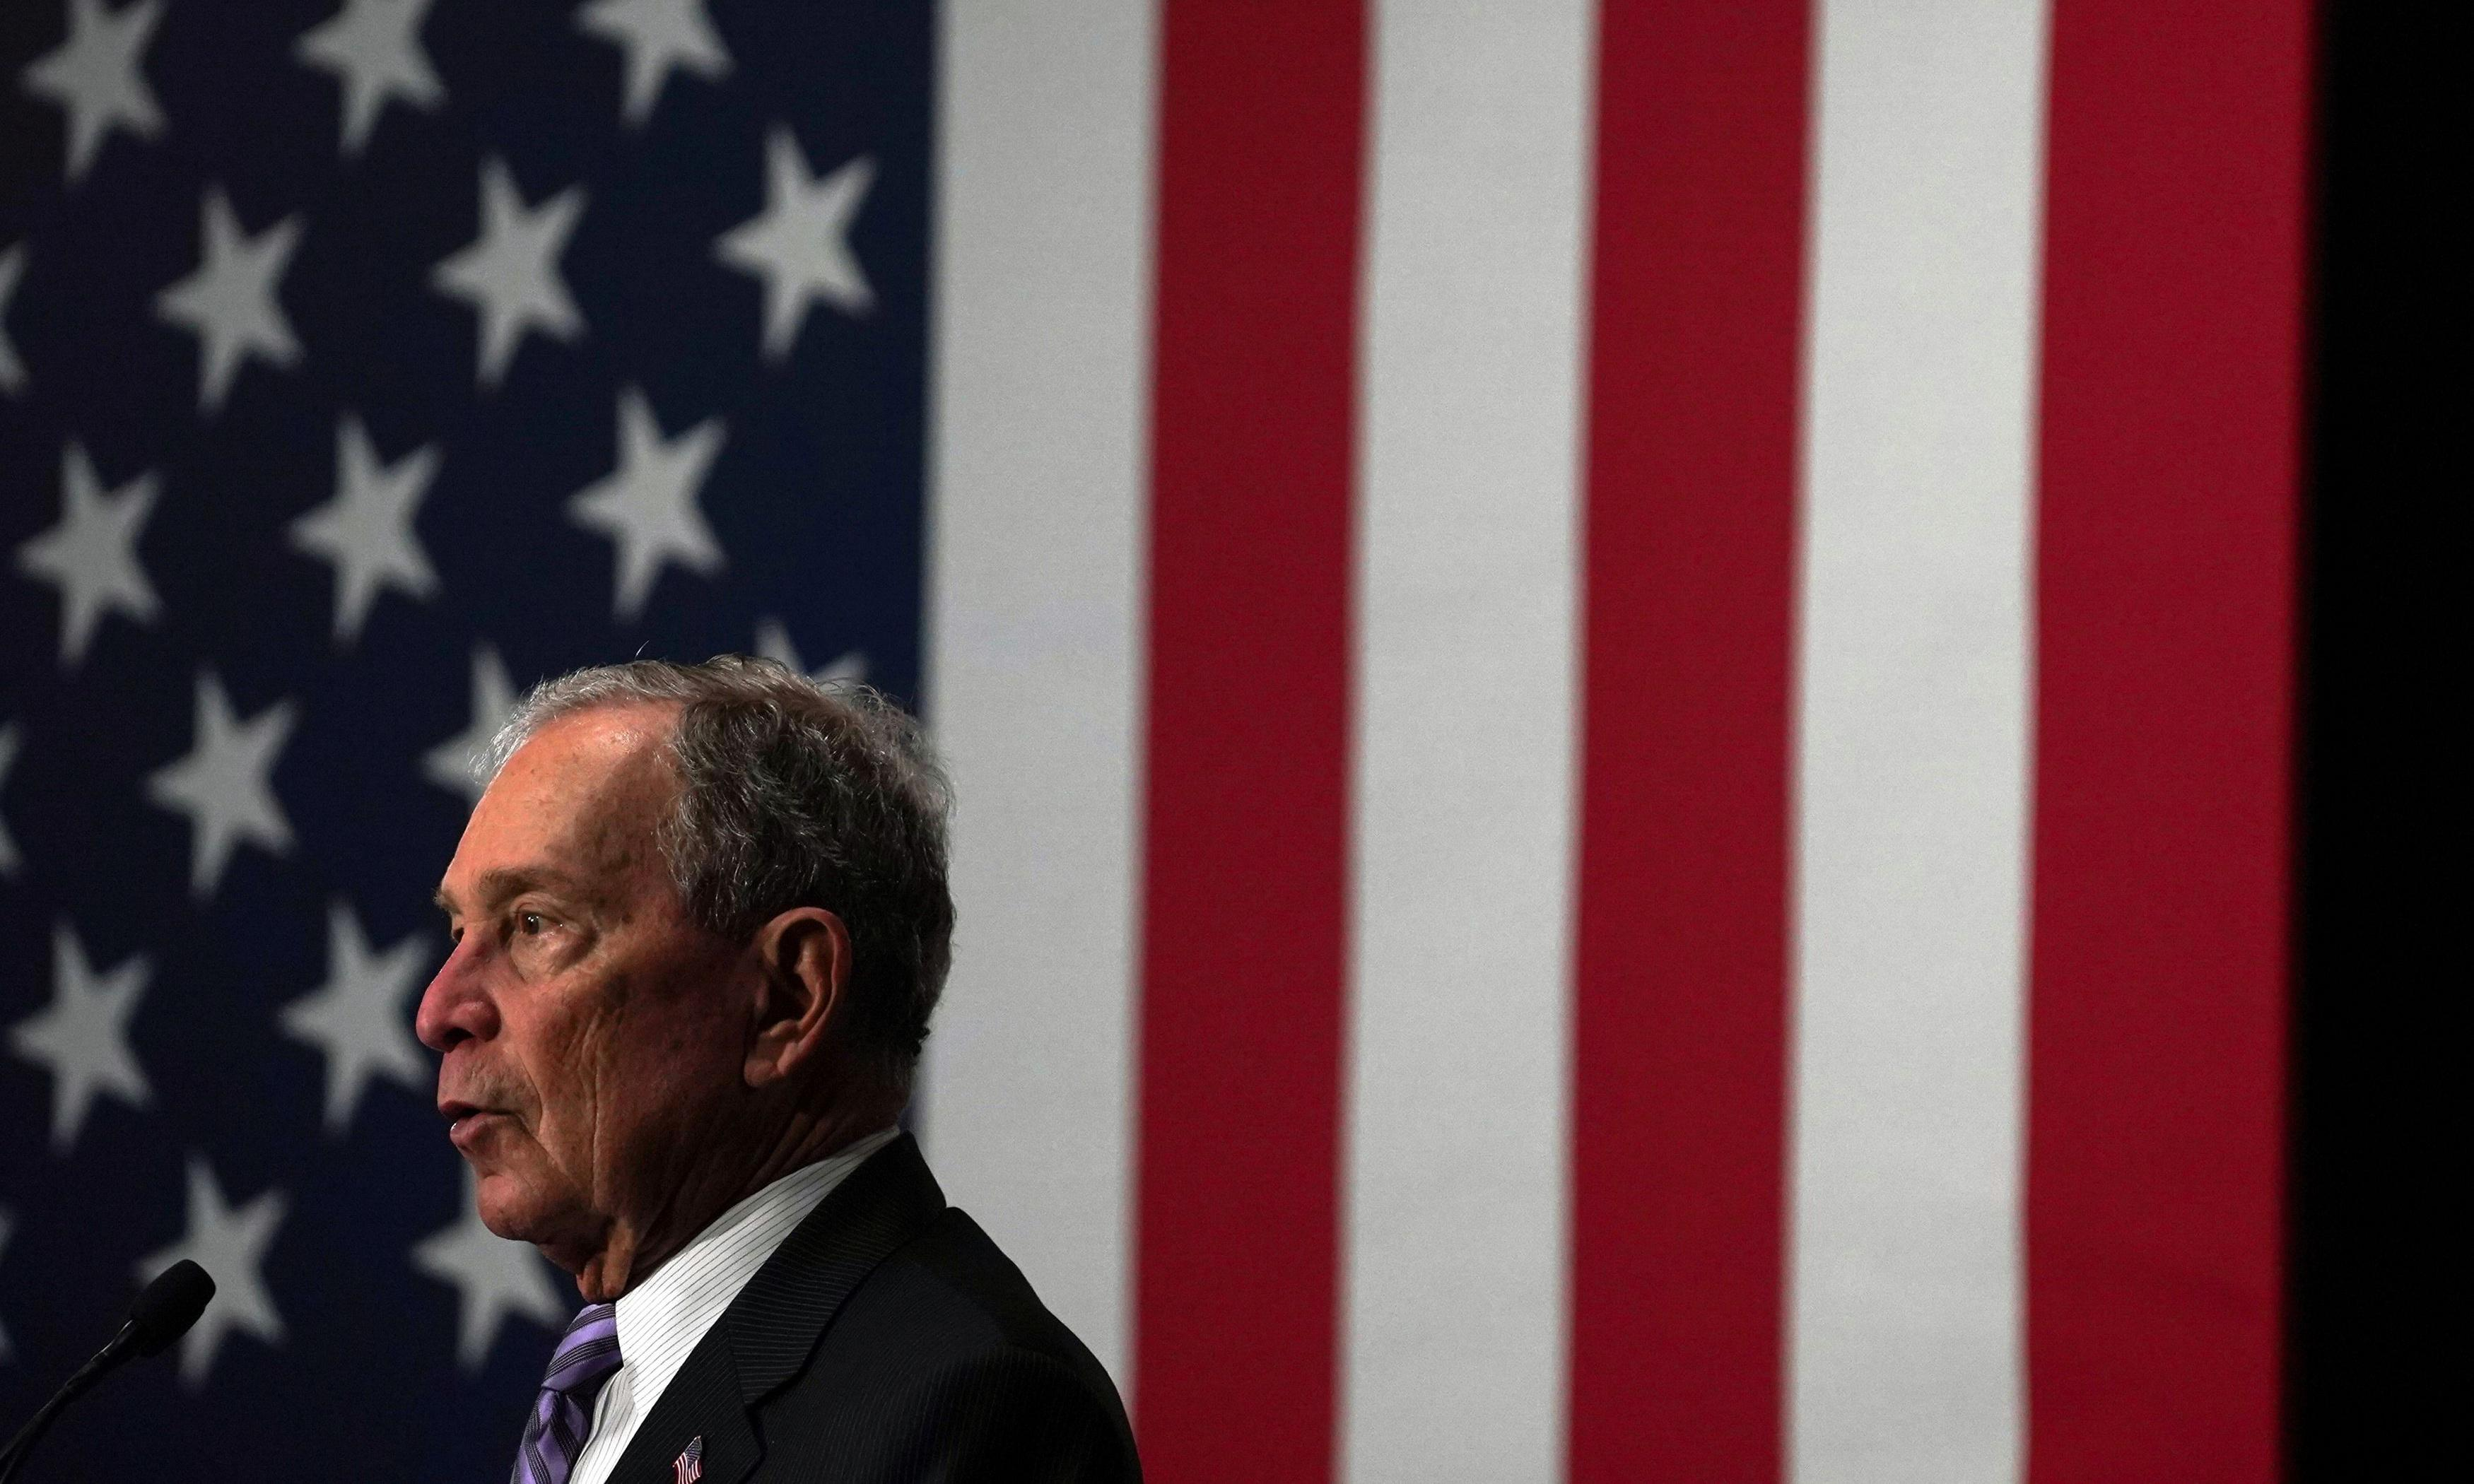 Michael Bloomberg's education 'reforms' would be a disaster for public schools